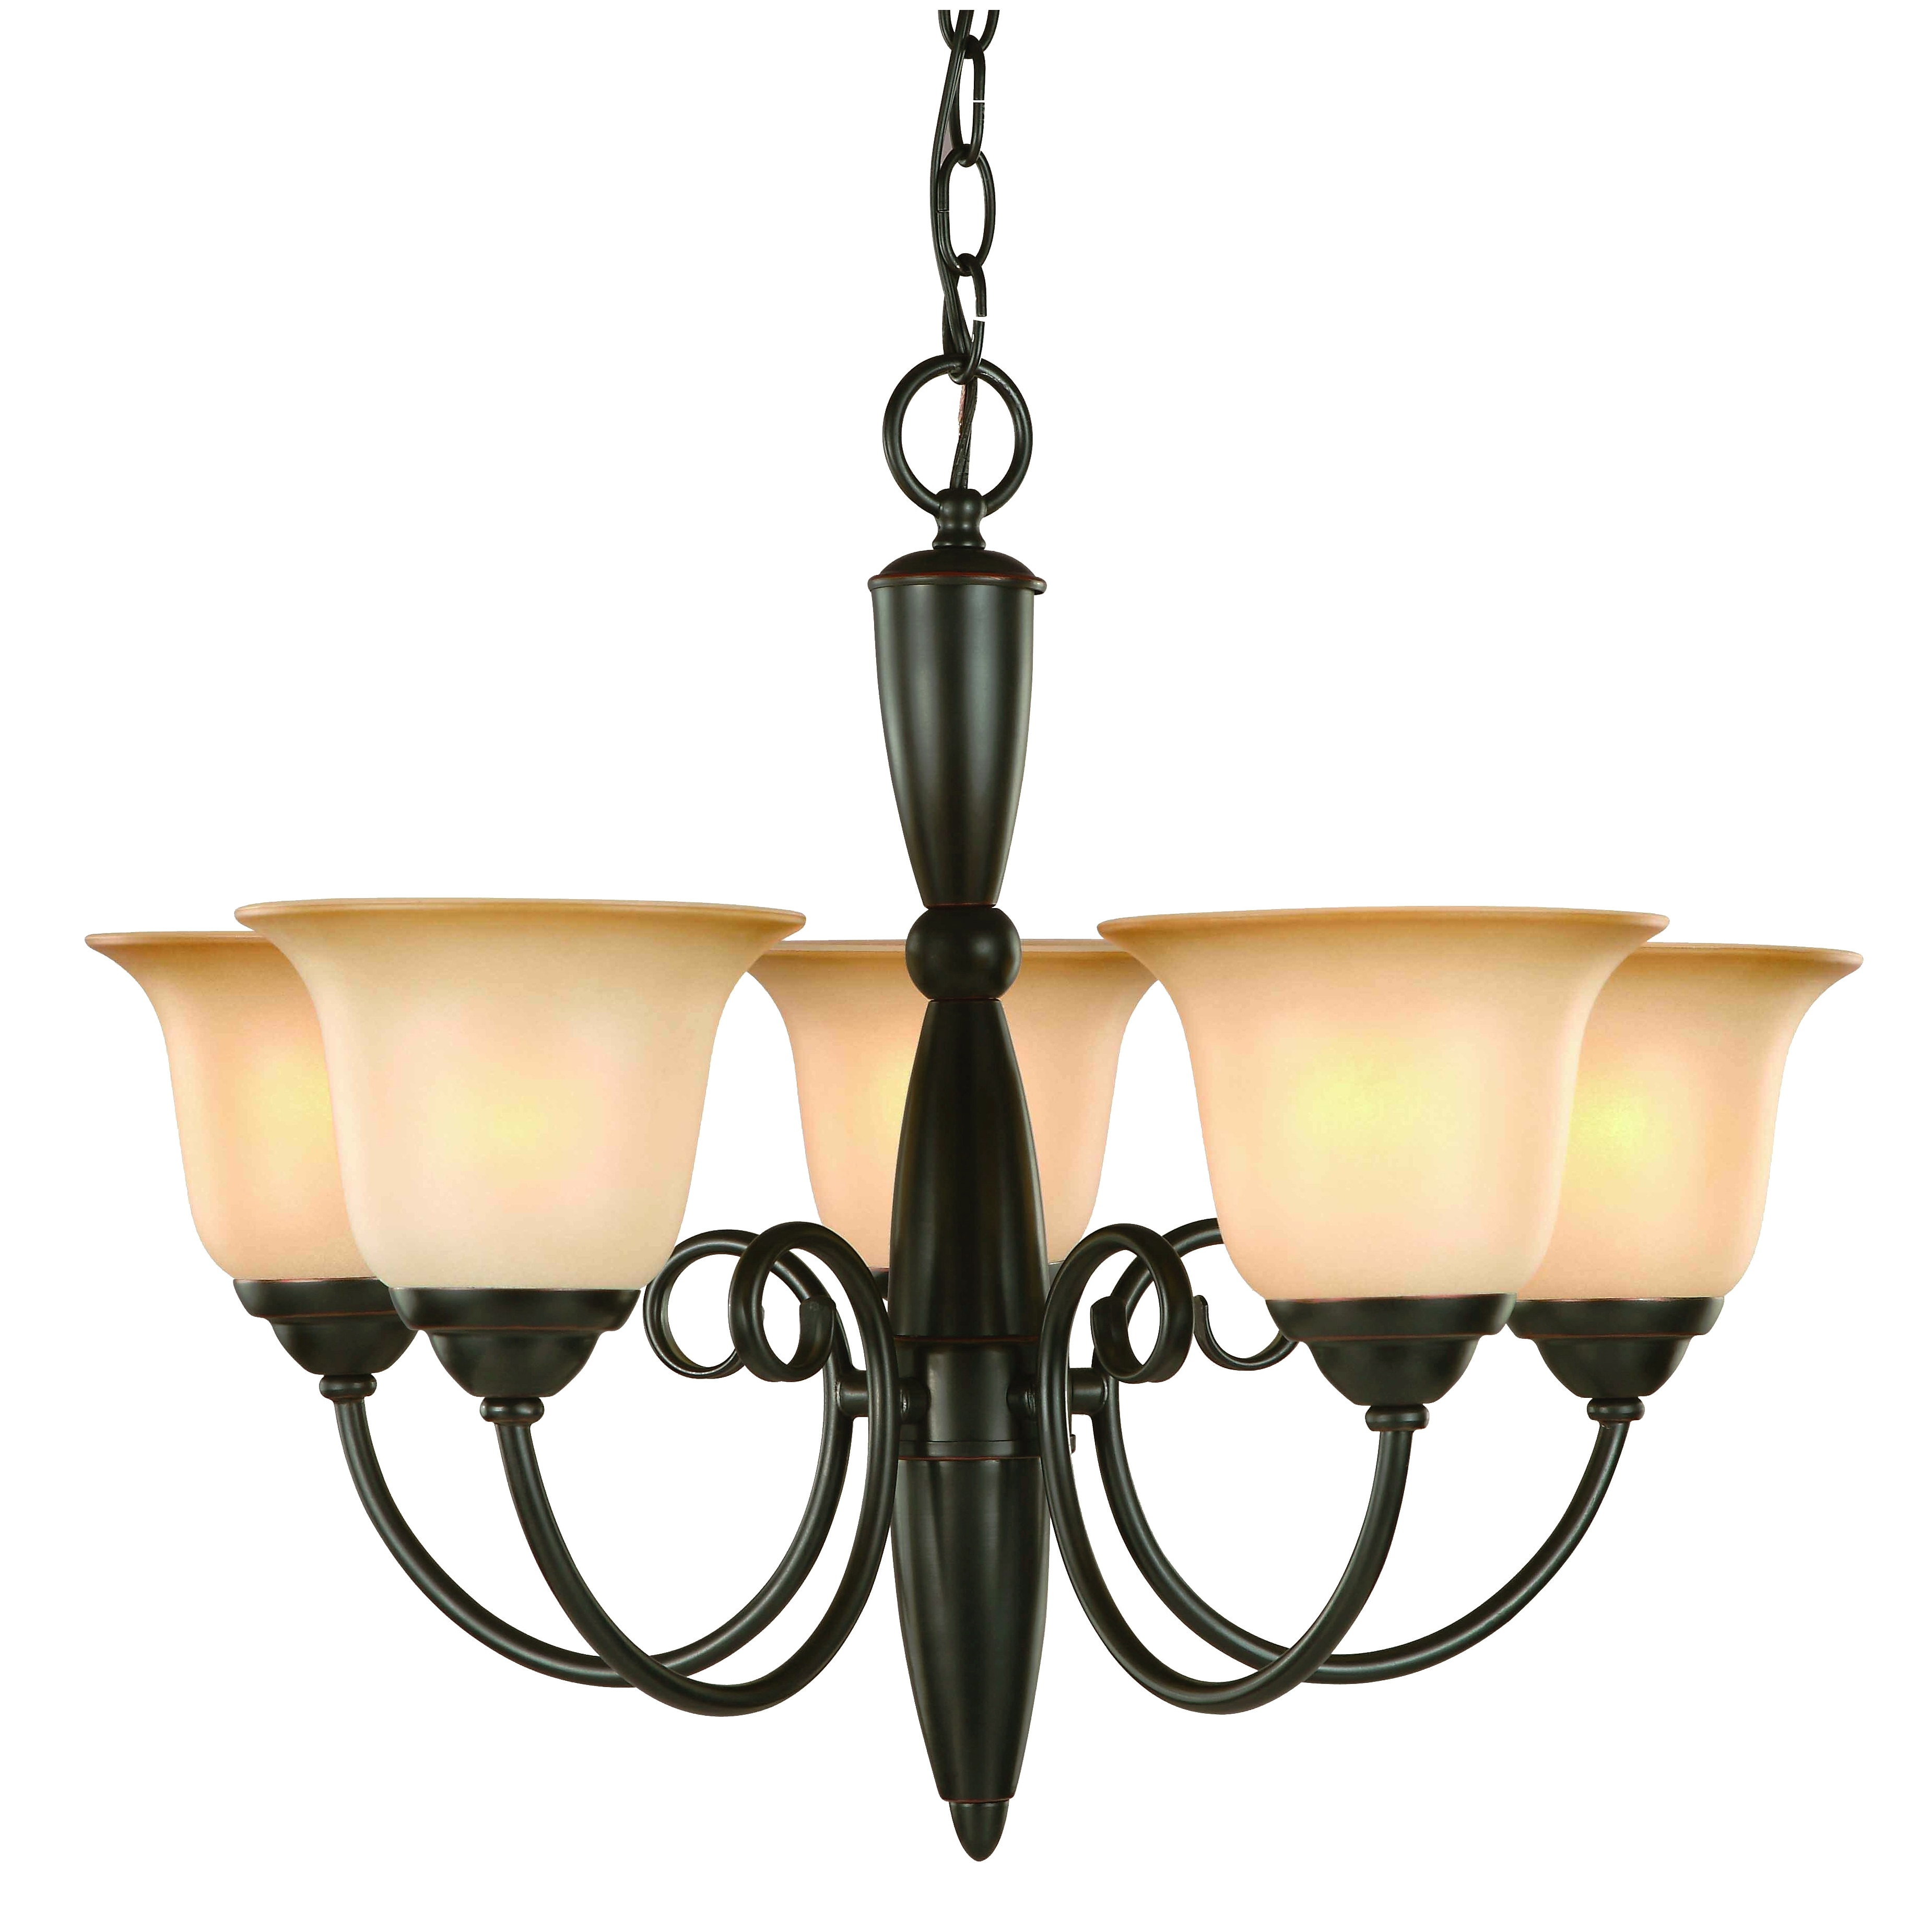 Chandelier Lights Pertaining To Most Popular Oil Rubbed Bronze Bathroom Vanity, Ceiling Lights & Chandelier (View 4 of 15)